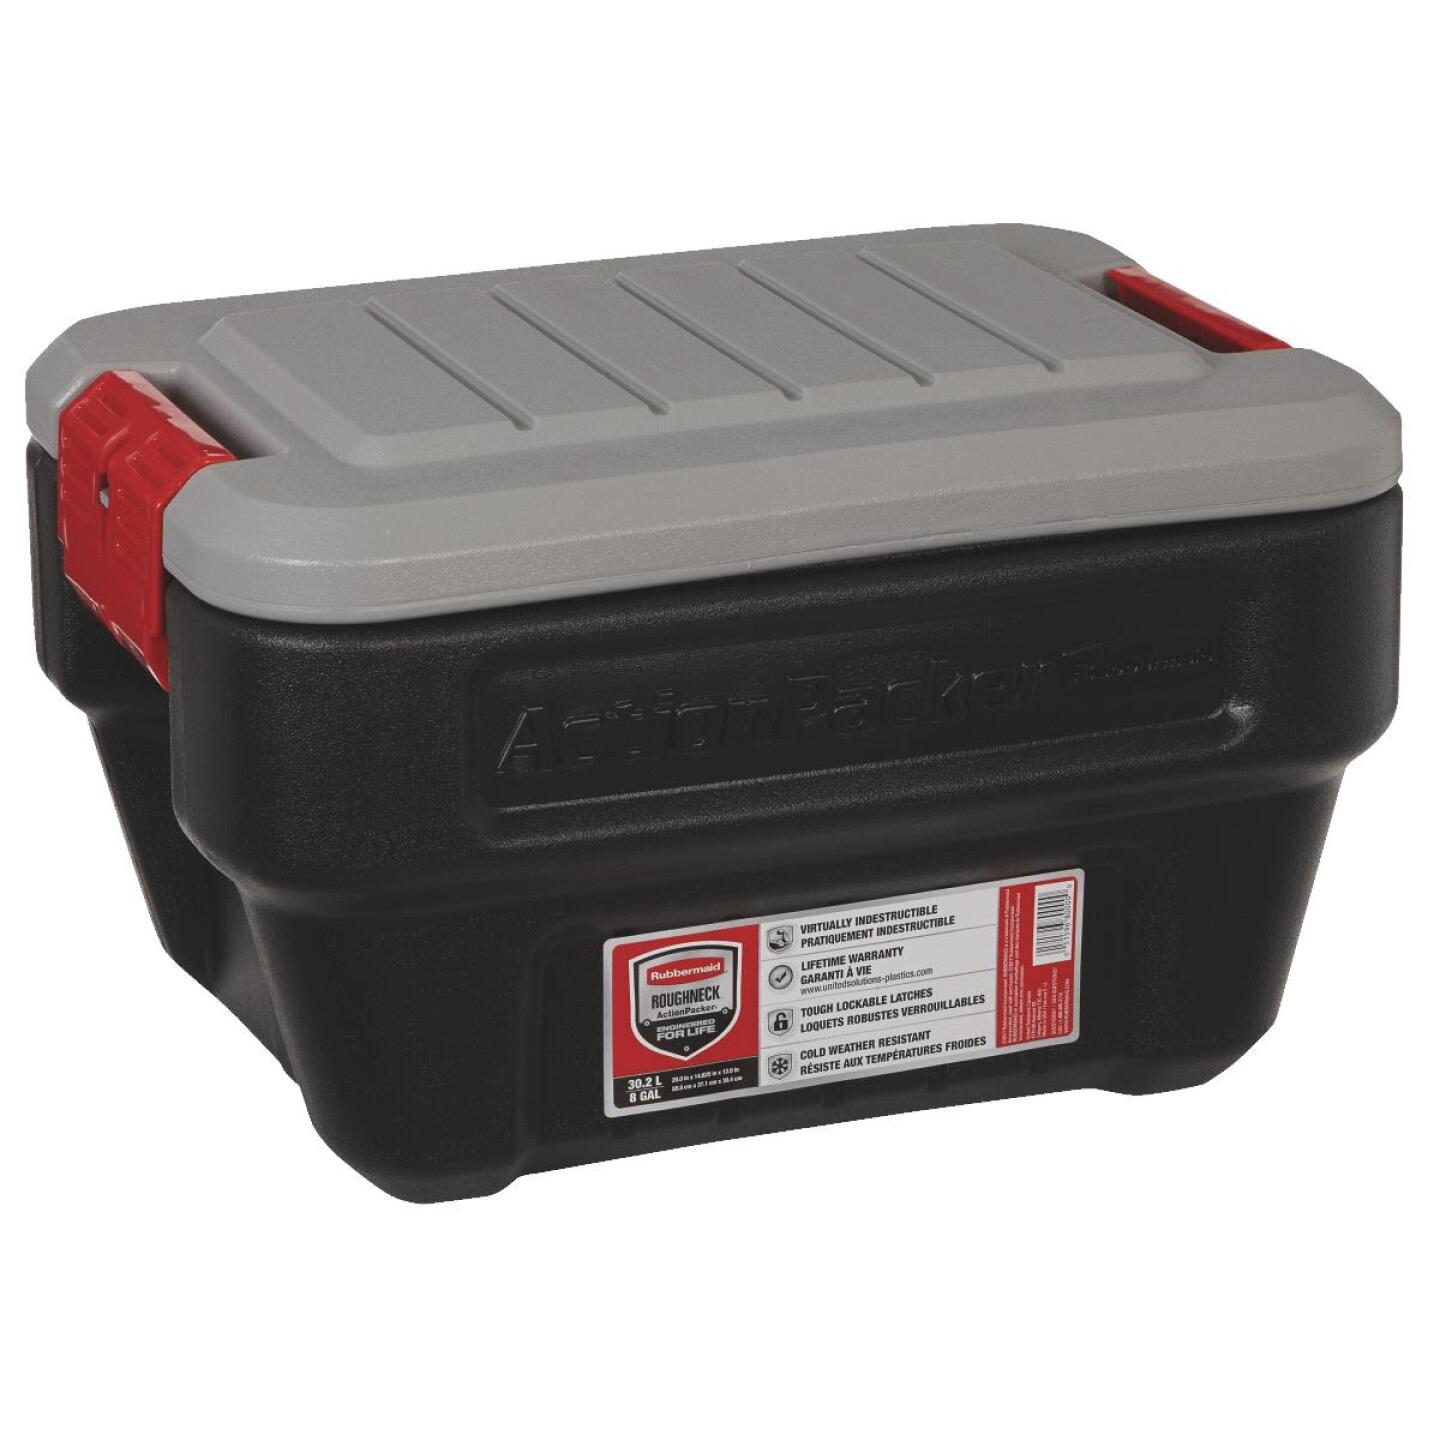 Rubbermaid ActionPacker 8 Gal. Black Storage Tote Image 1